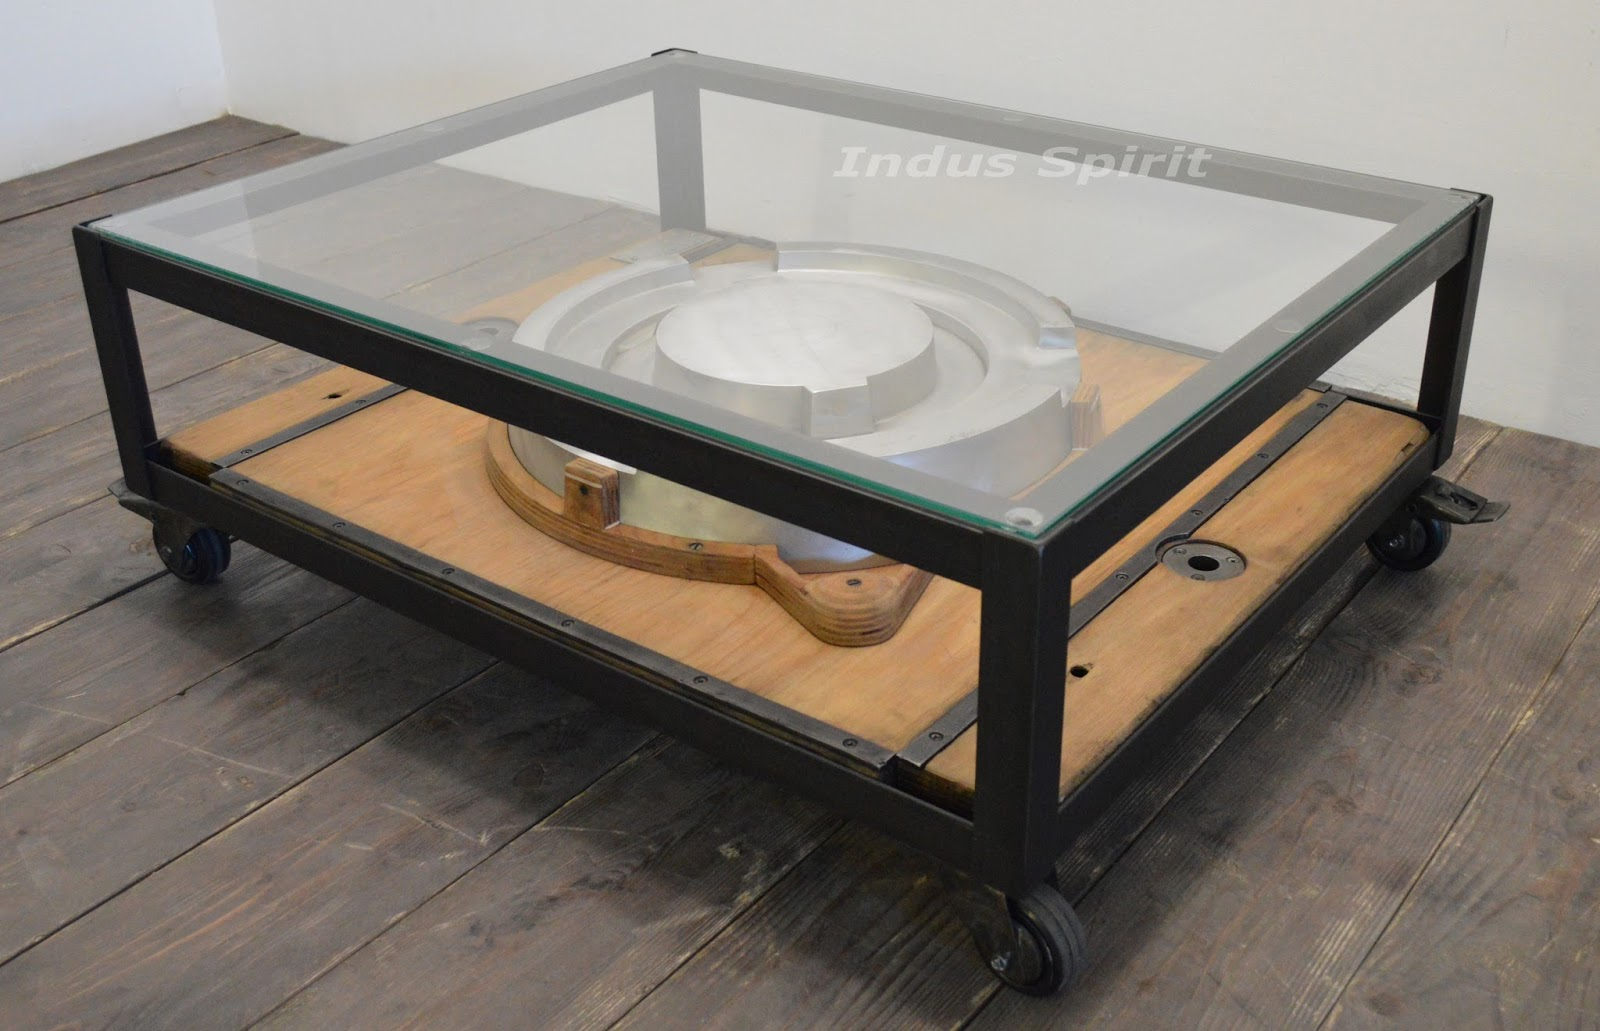 Design Industriel Meuble Table Basse Design Industriel